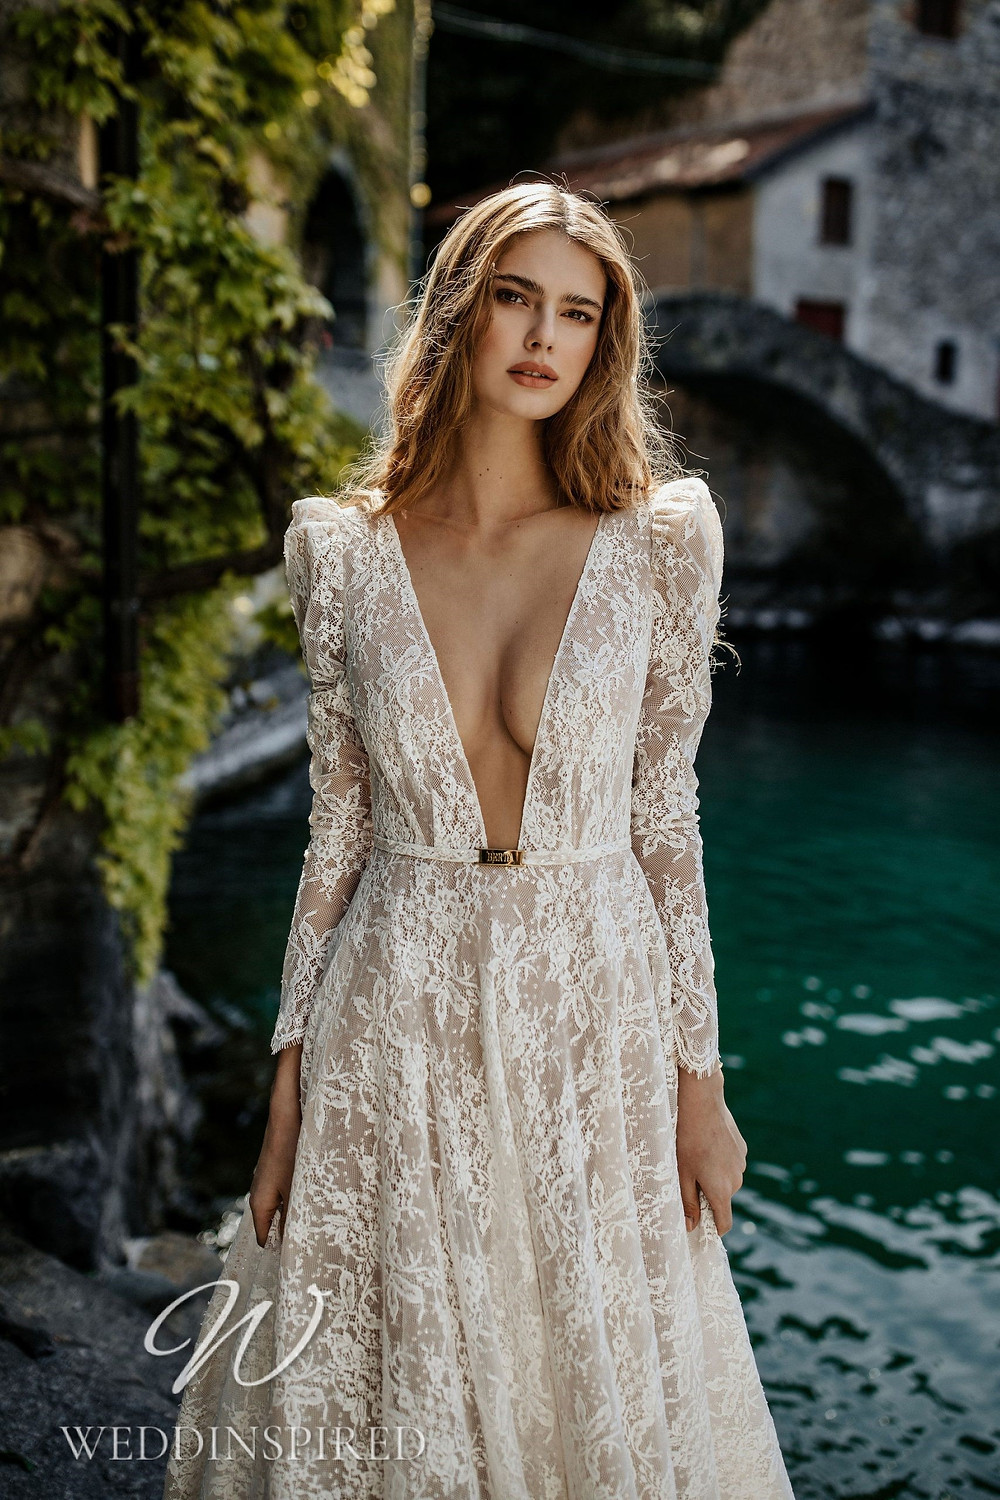 A Berta 2022 lace A-line wedding dress with long sleeves